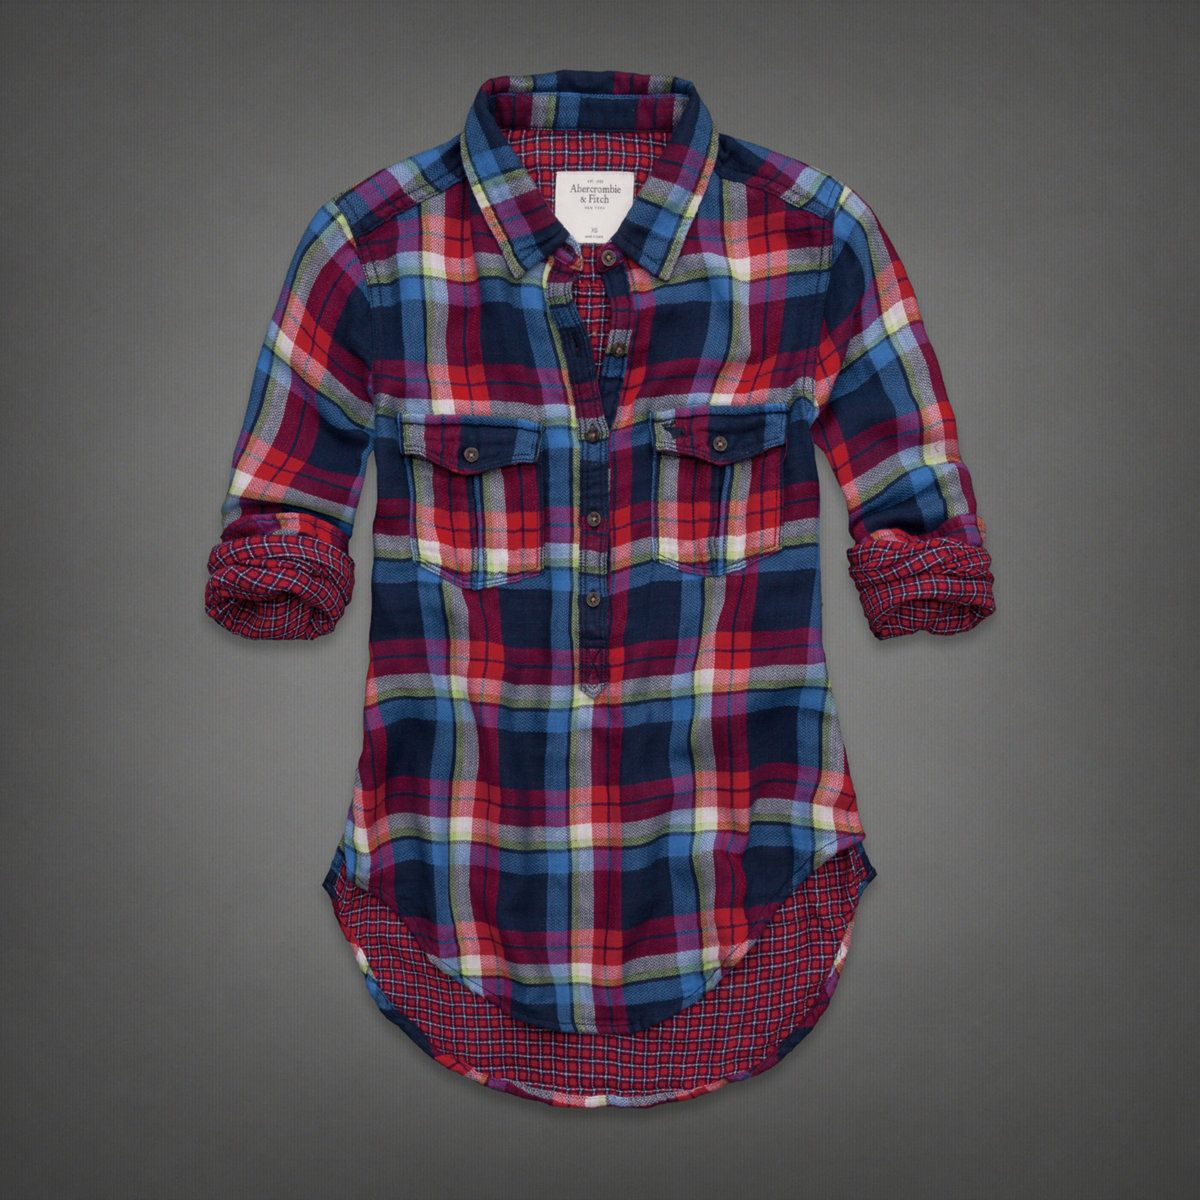 Abercrombie Accessories Abercrombie Accessories Abercrombie Womens Abercrombie Couple Abercrombie Womens: Womens Shannon Flannel Shirt